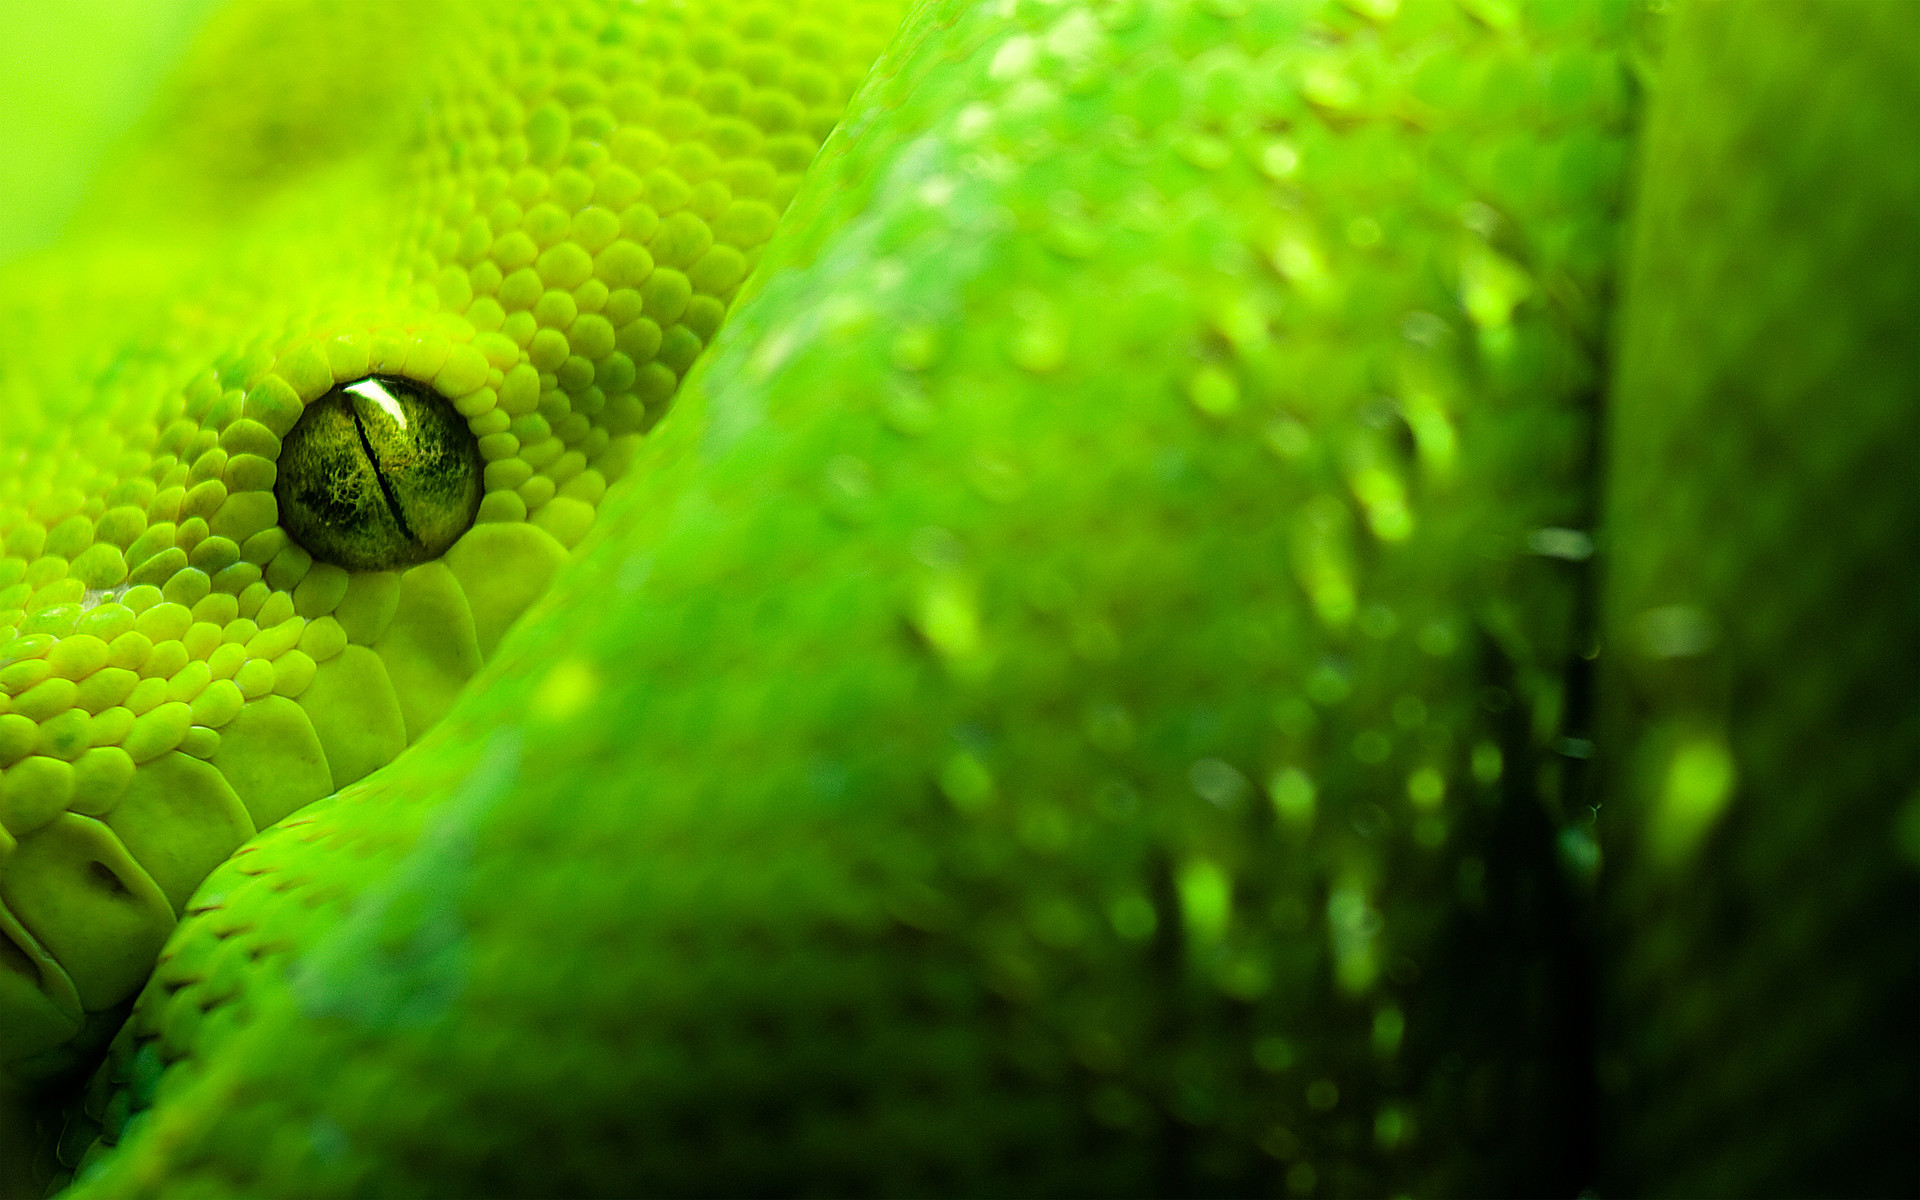 Res: 1920x1200, Author: Grimnar. Tags: Great Eyes Snake